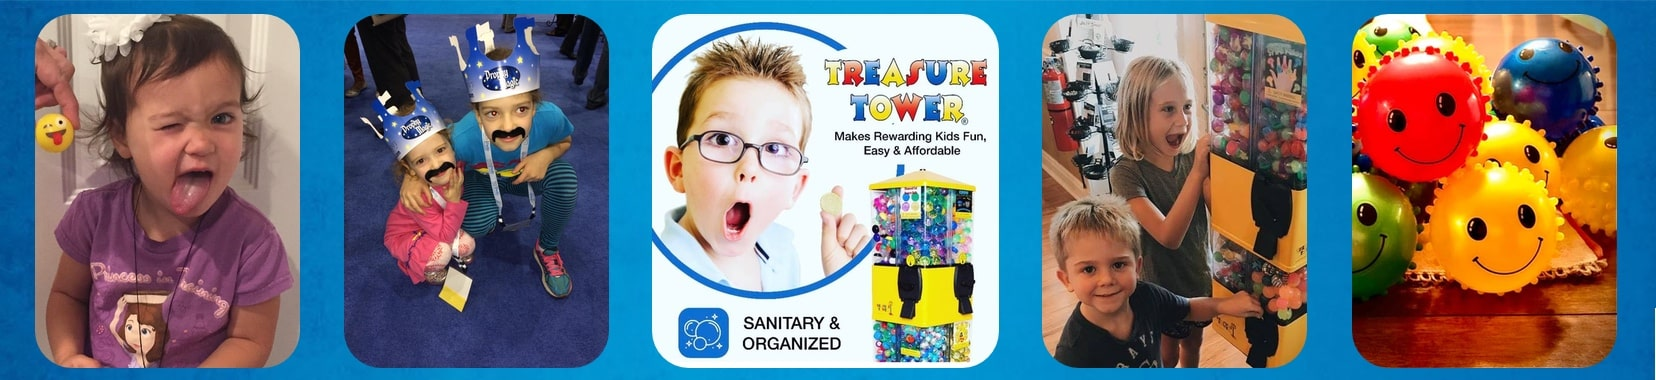 Treasure Tower Rewards Sanitary and Organized